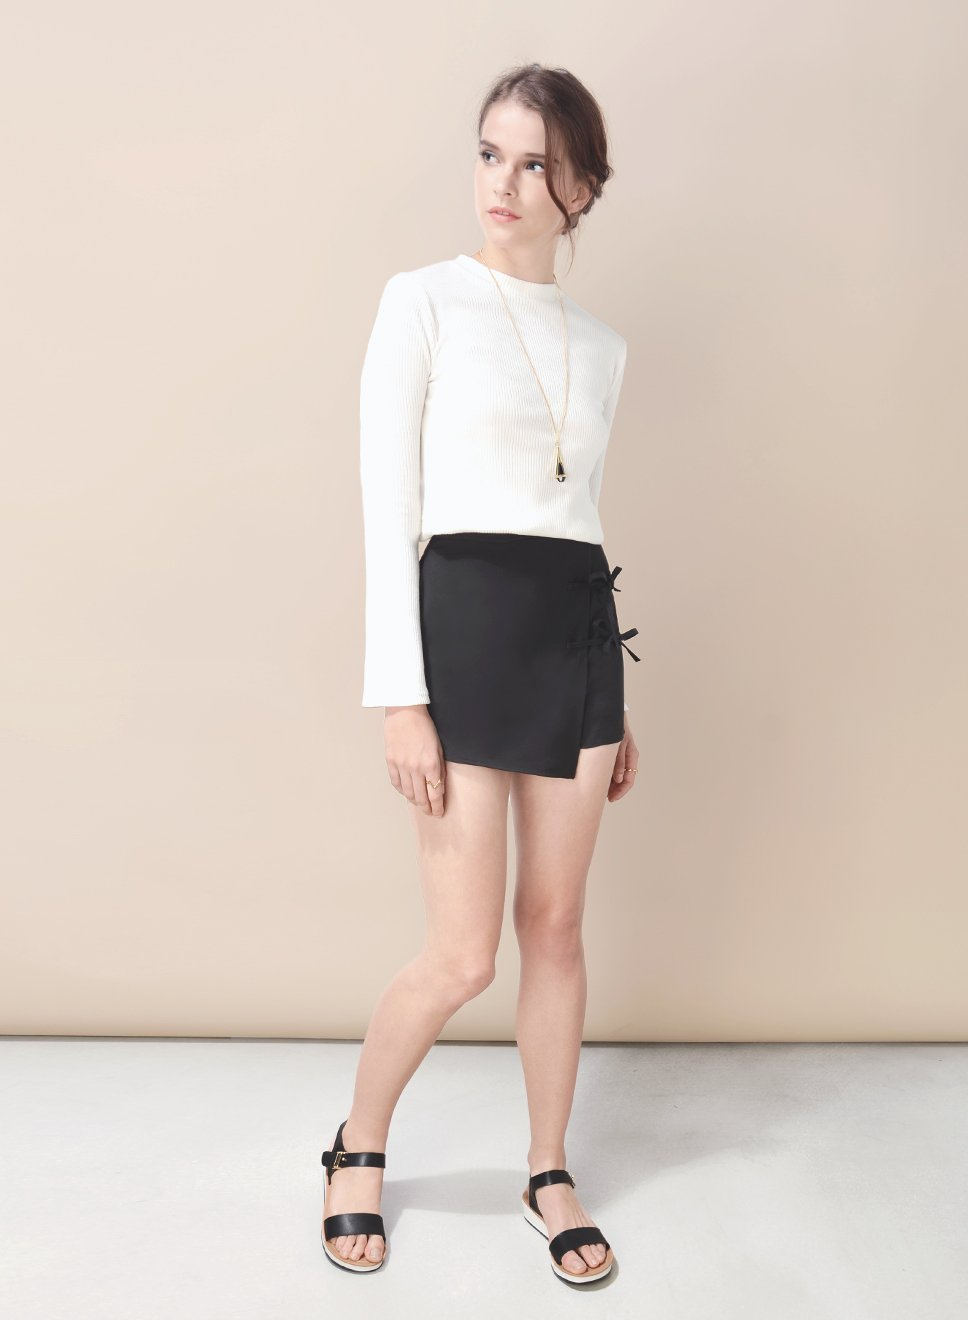 RIPTIDE ribbon tie skorts (Black) at $ 16.50 only sold at And Well Dressed Online Fashion Store Singapore